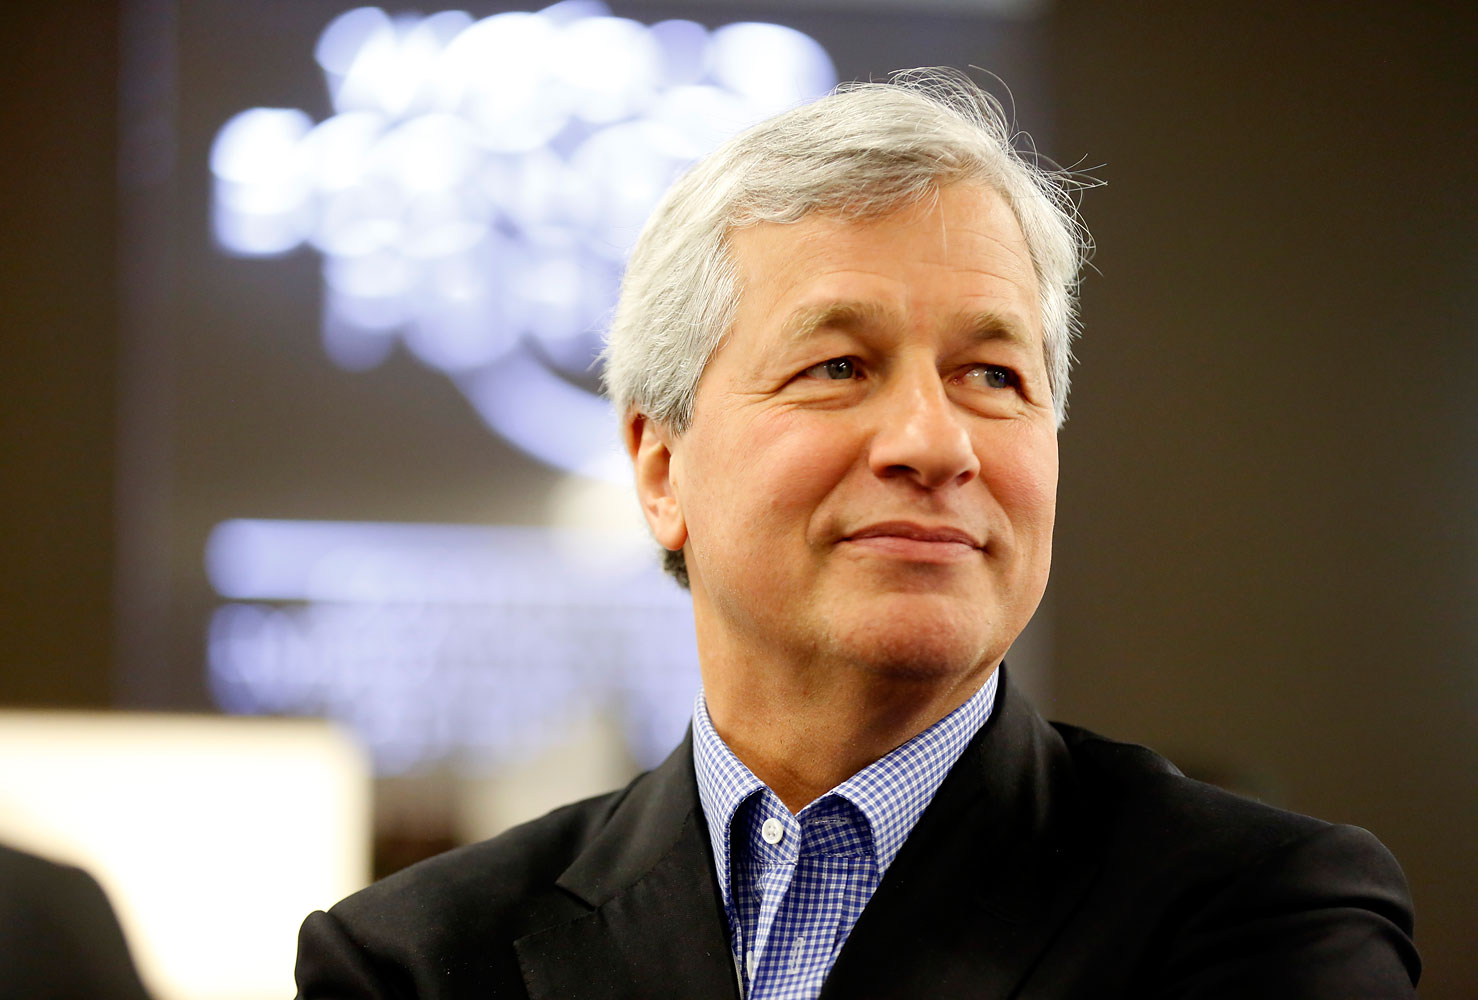 James  Jamie  Dimon, CEO of JPMorgan Chase & Co., at the World Economic Forum in Davos, Switzerland, Jan. 22, 2014.